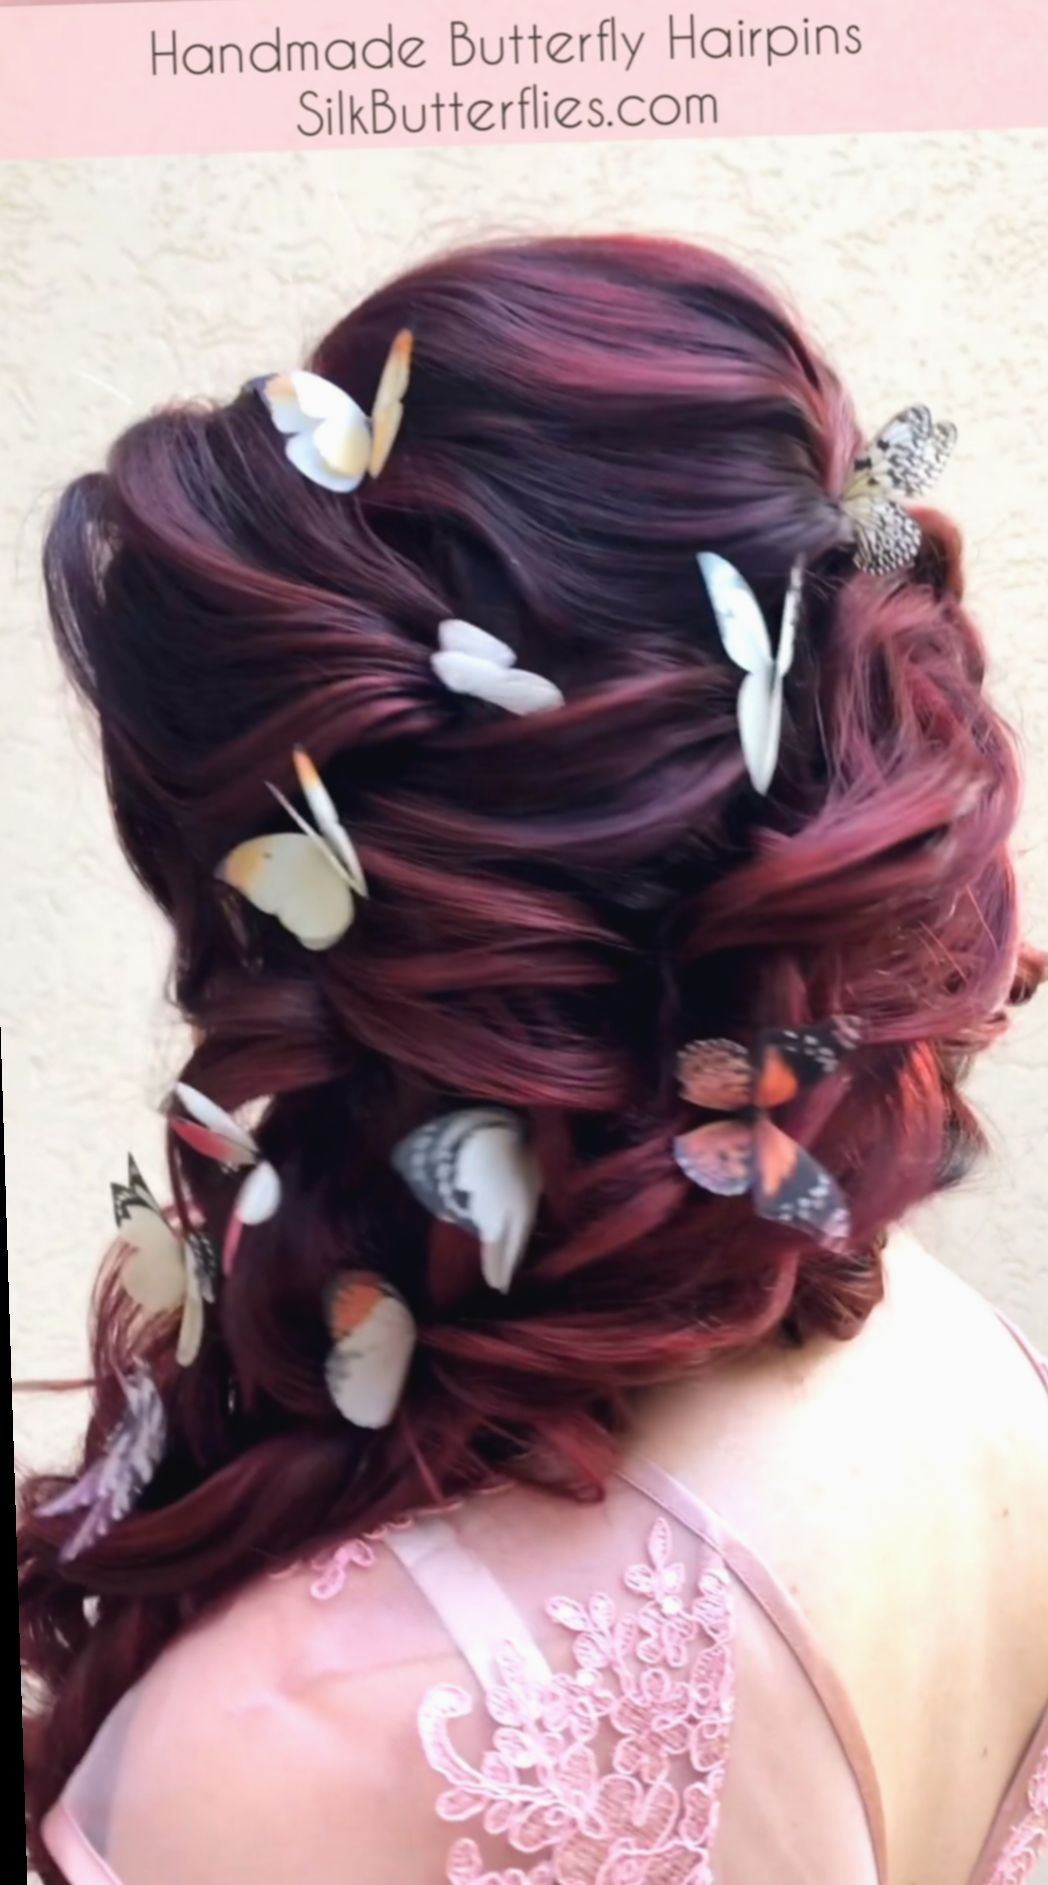 12 Hairstyles Prom Videos Pretty In 2020 Hair Styles Butterfly Hair Clip Butterfly Hair